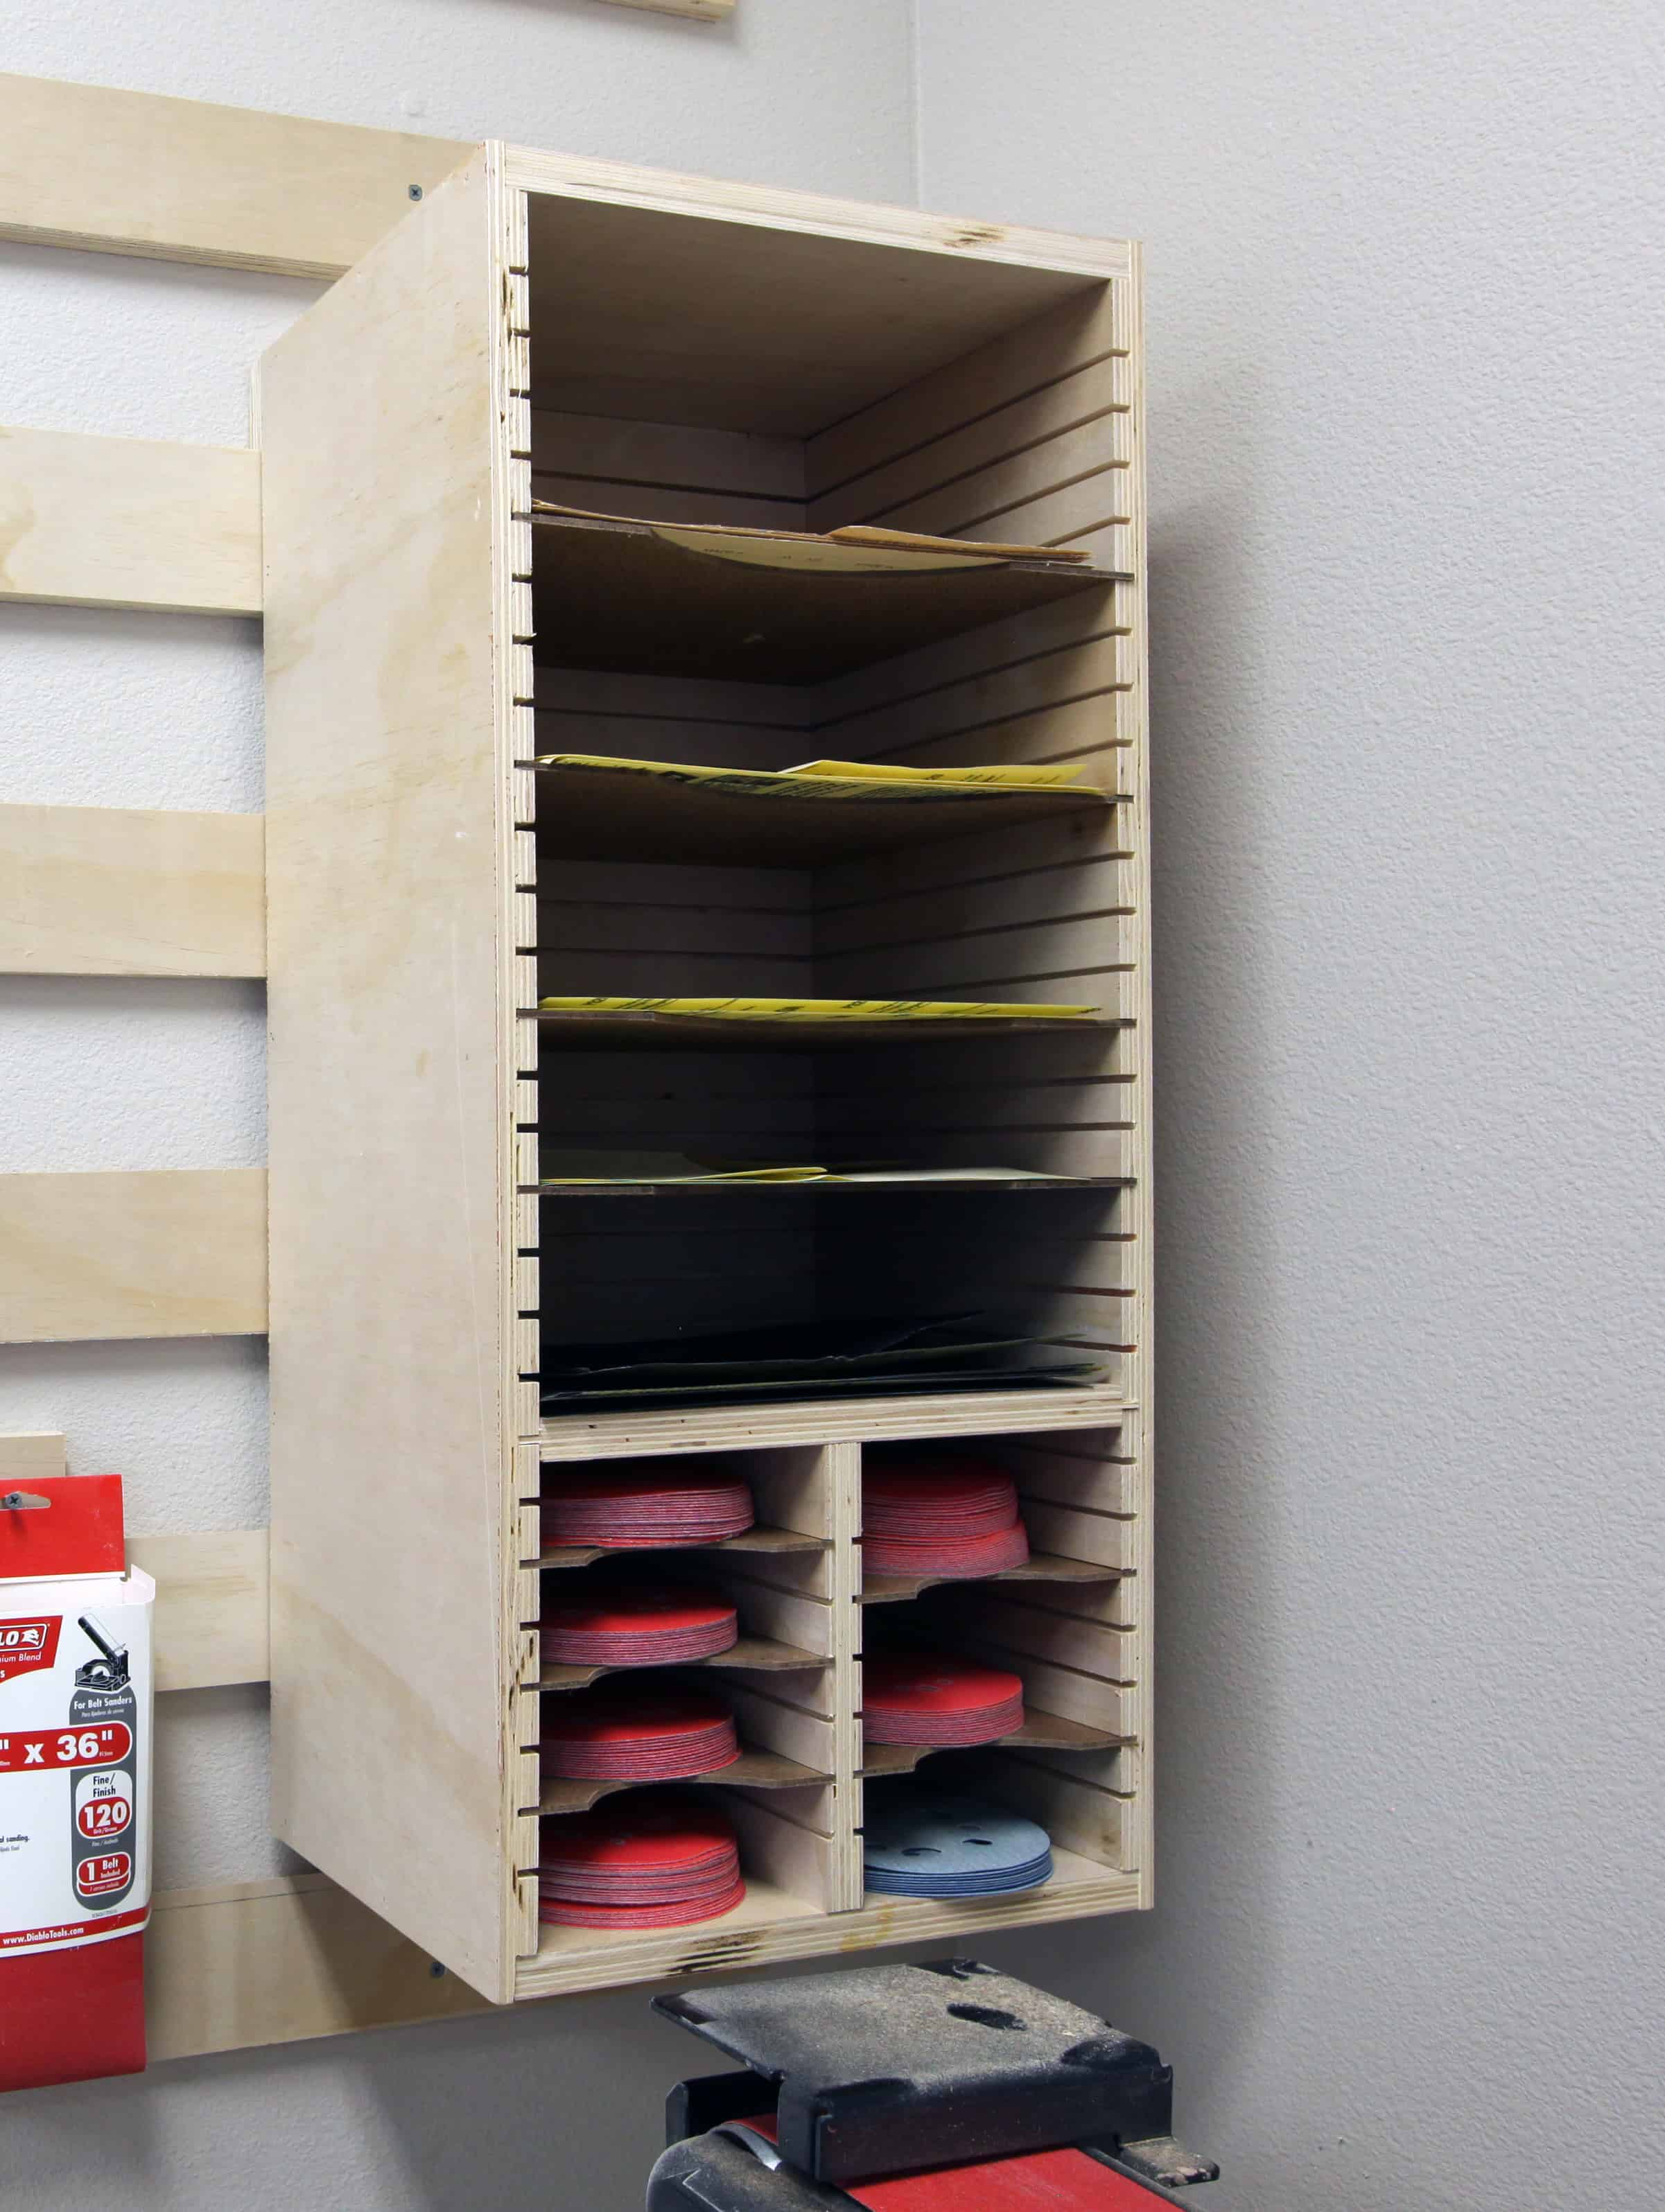 How to make a Sandpaper Storage Station - The Geek Pub